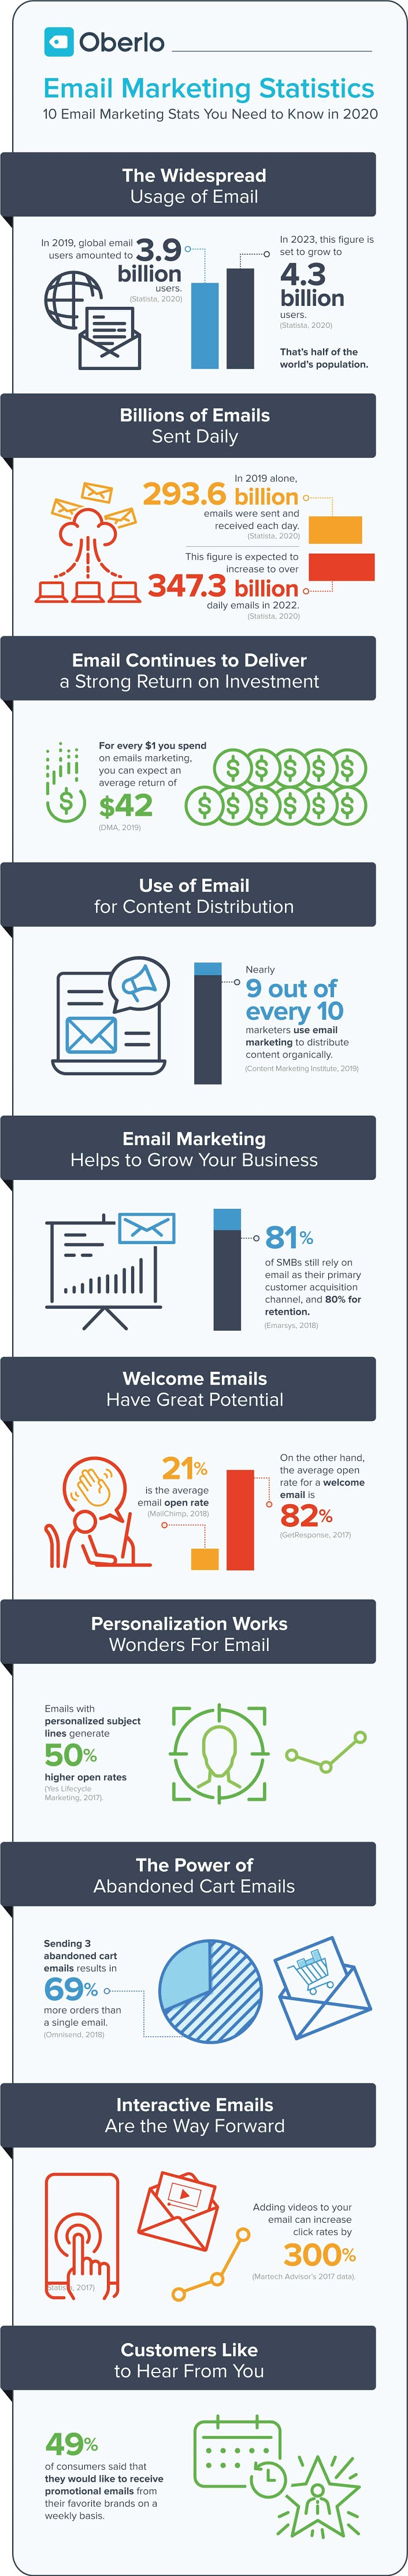 10 Email Marketing Stats You Need to Know in 2020